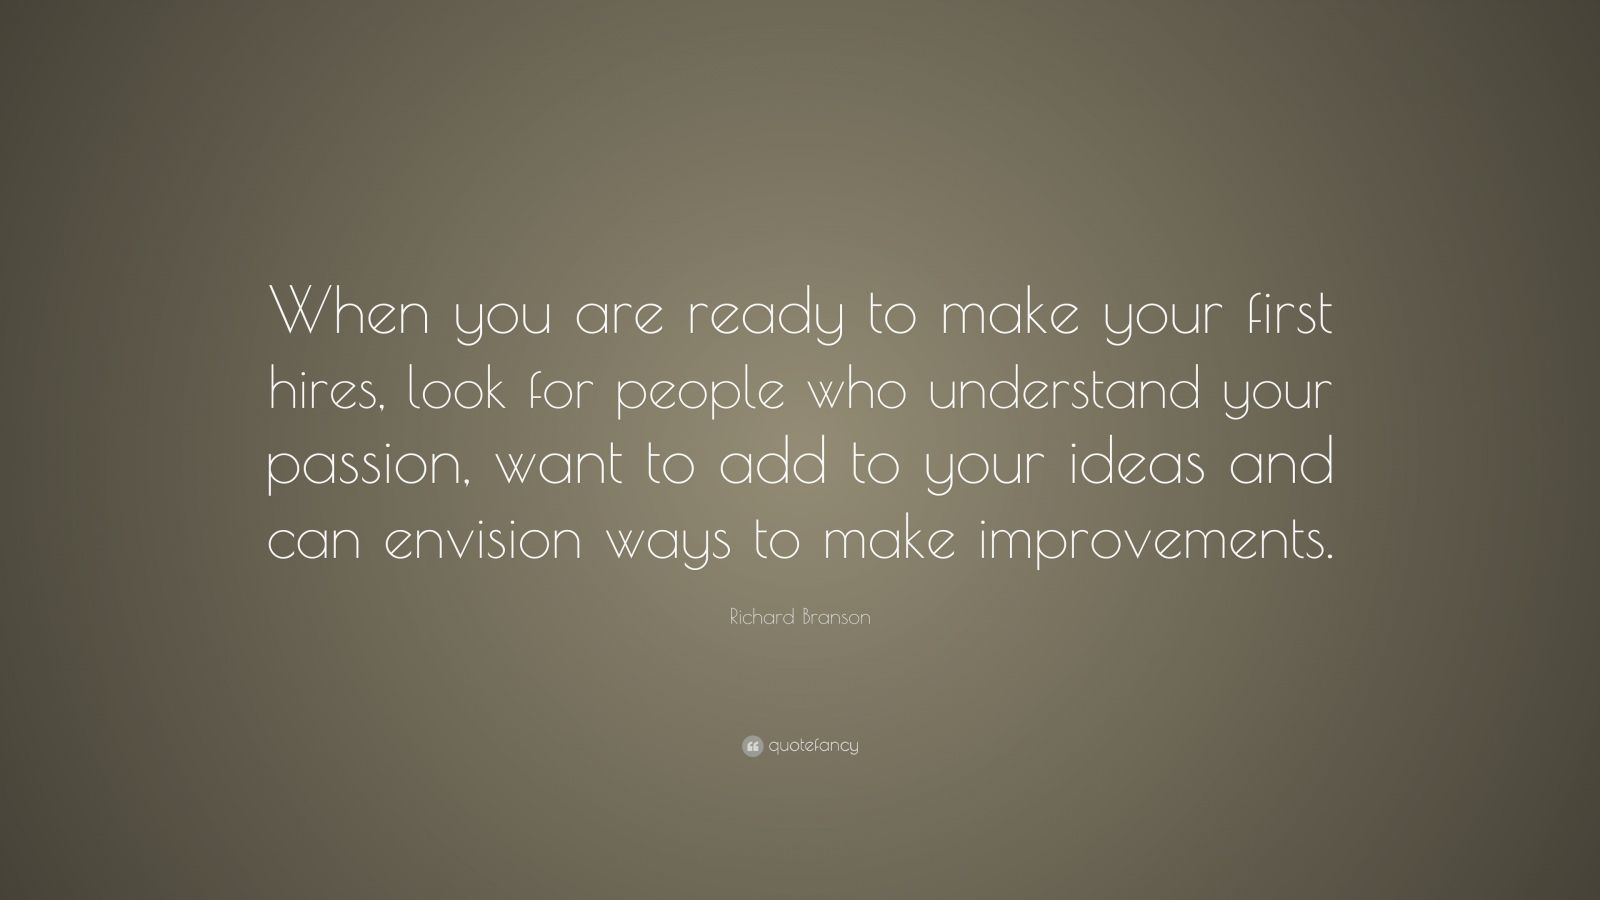 """Richard Branson Quote: """"When you are ready to make your first hires, look for people who understand your passion, want to add to your ideas and can envision ways to make improvements."""""""